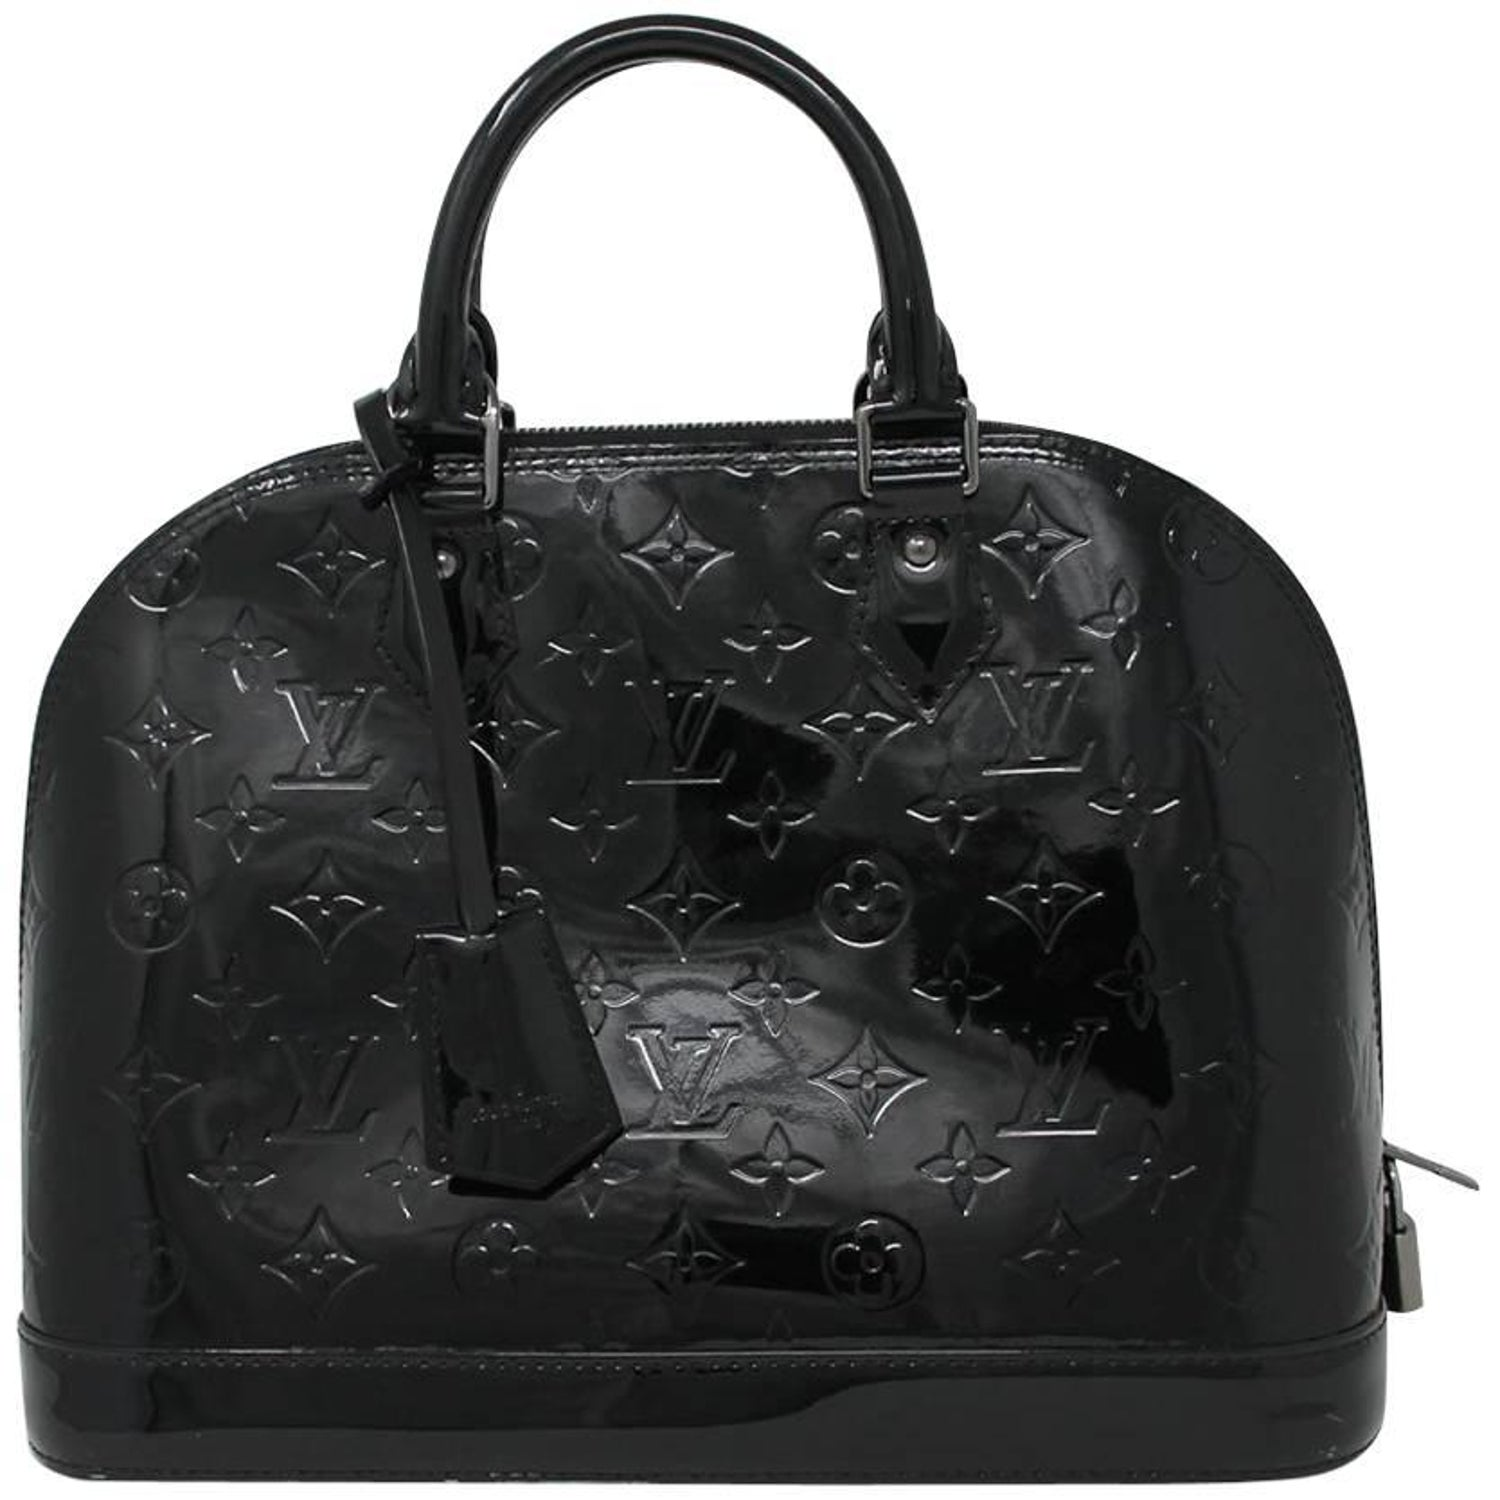 01e53fa01c7a4d Louis Vuitton Alma PM Magnetique Vernis Noir Black Handbag Purse at 1stdibs